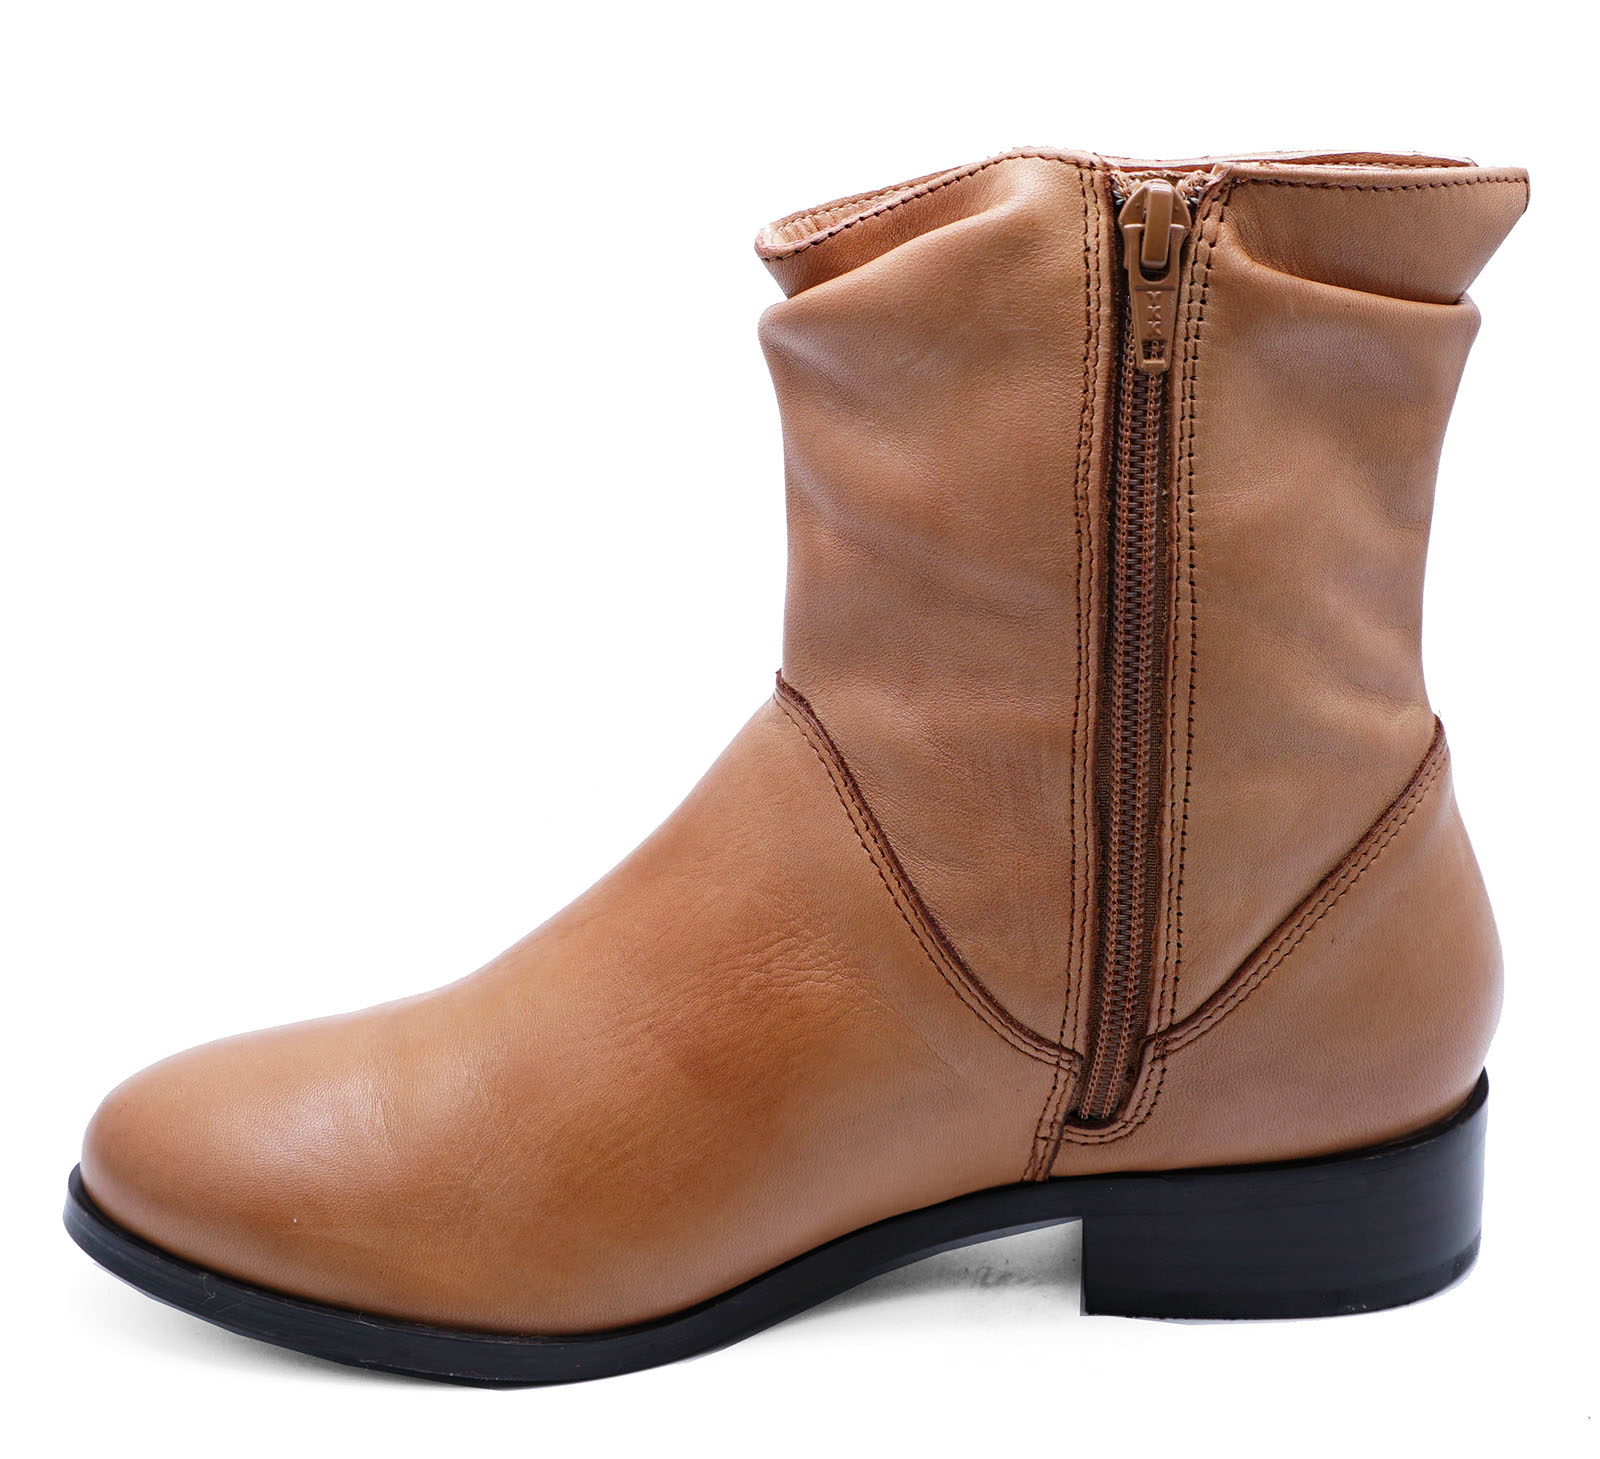 LADIES-FLAT-GENUINE-LEATHER-TAN-ZIP-UP-ANKLE-CALF-BOOTS-COMFY-SHOES-SIZES-2-9 thumbnail 8